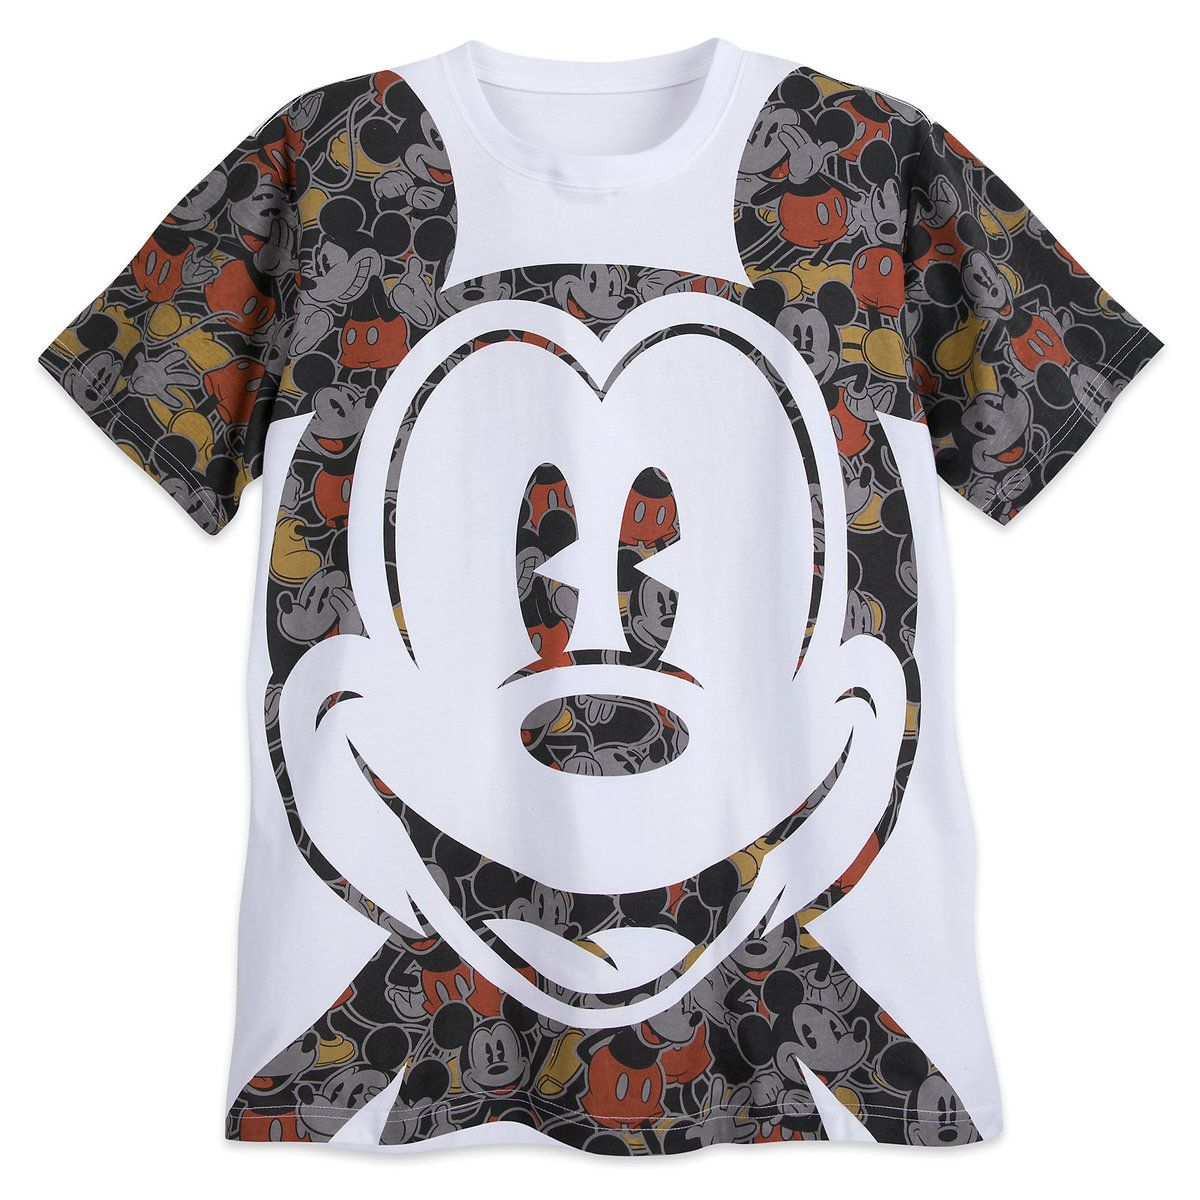 c62c09843a Mickey Mouse Timeless Fashion T-Shirt - Men in 2019 | Stuff I want ...